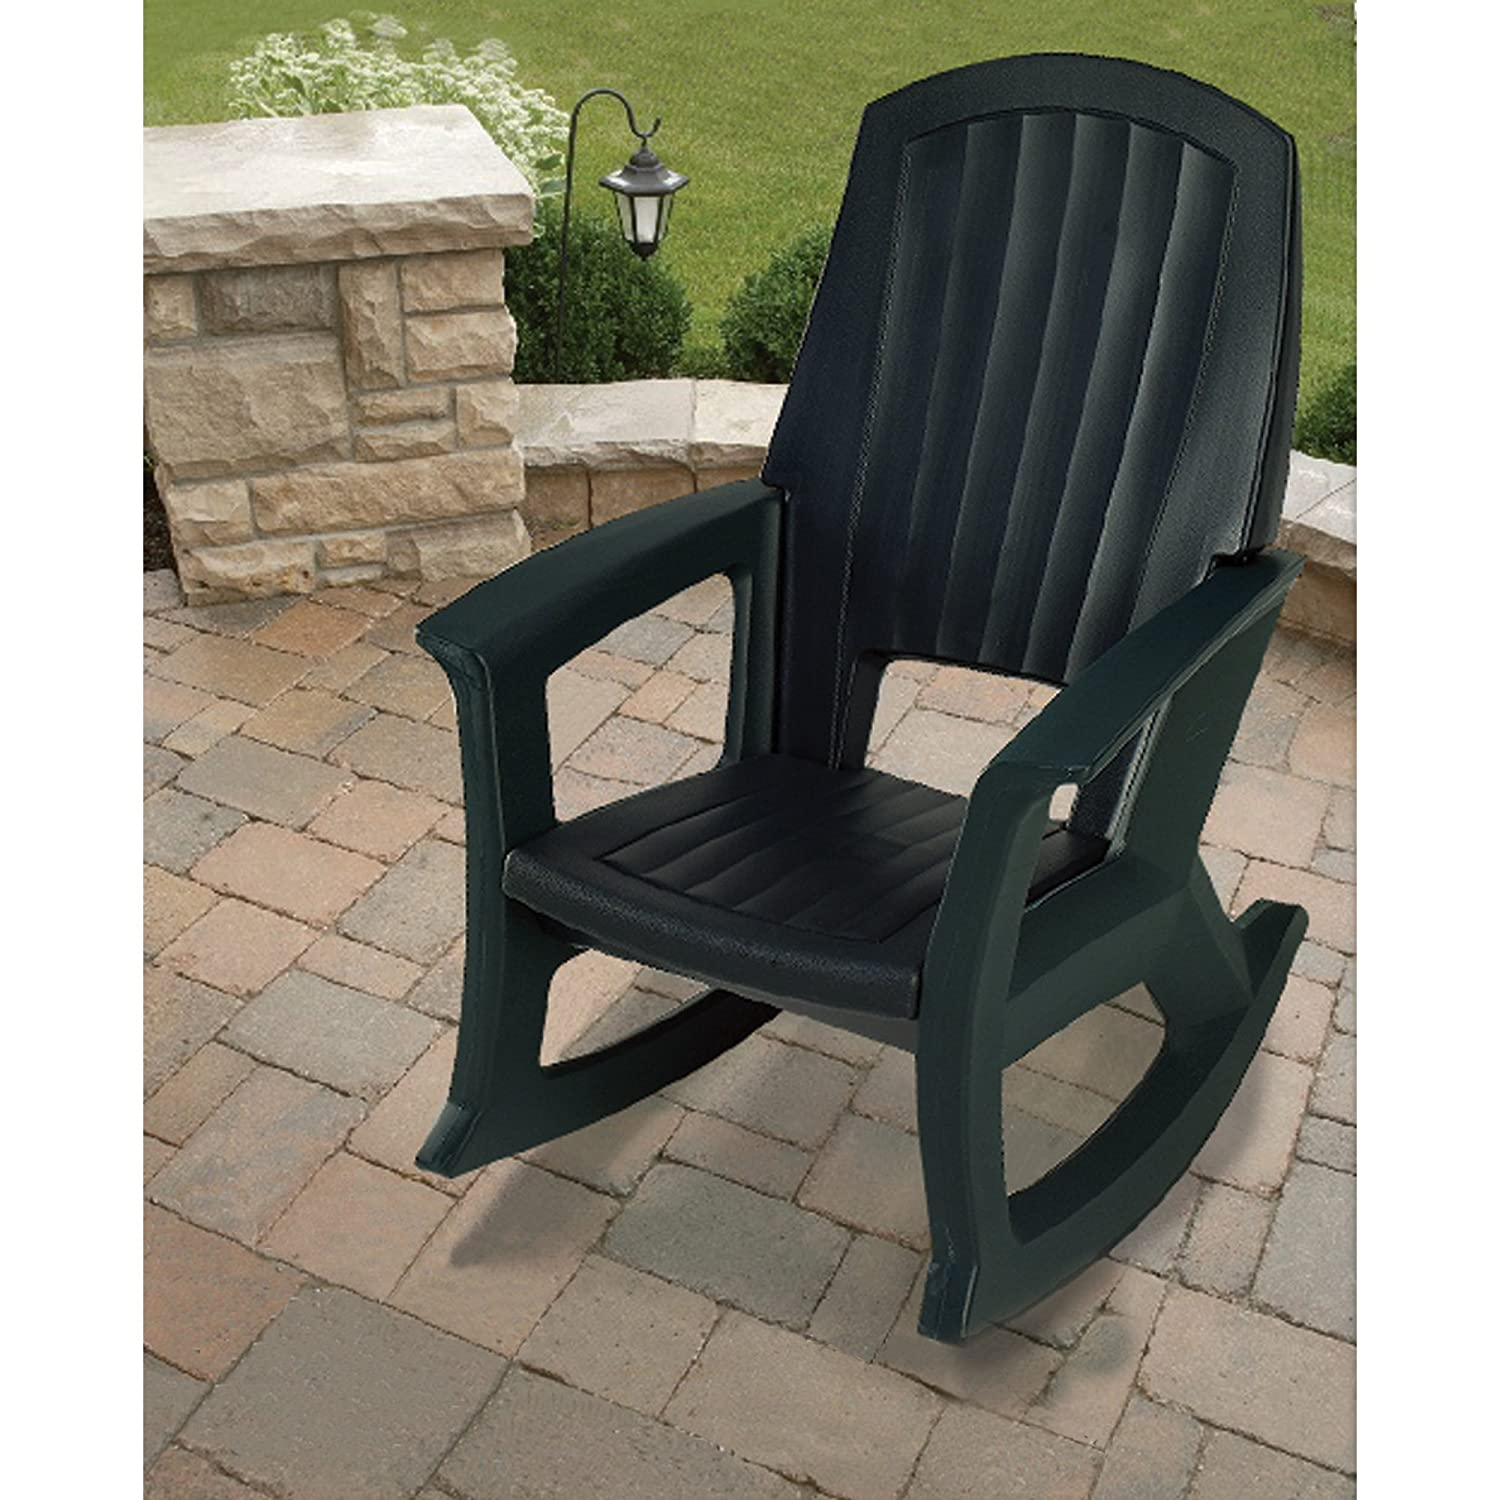 Find Recycled Plastic Outdoor Furniture All Home Decorations